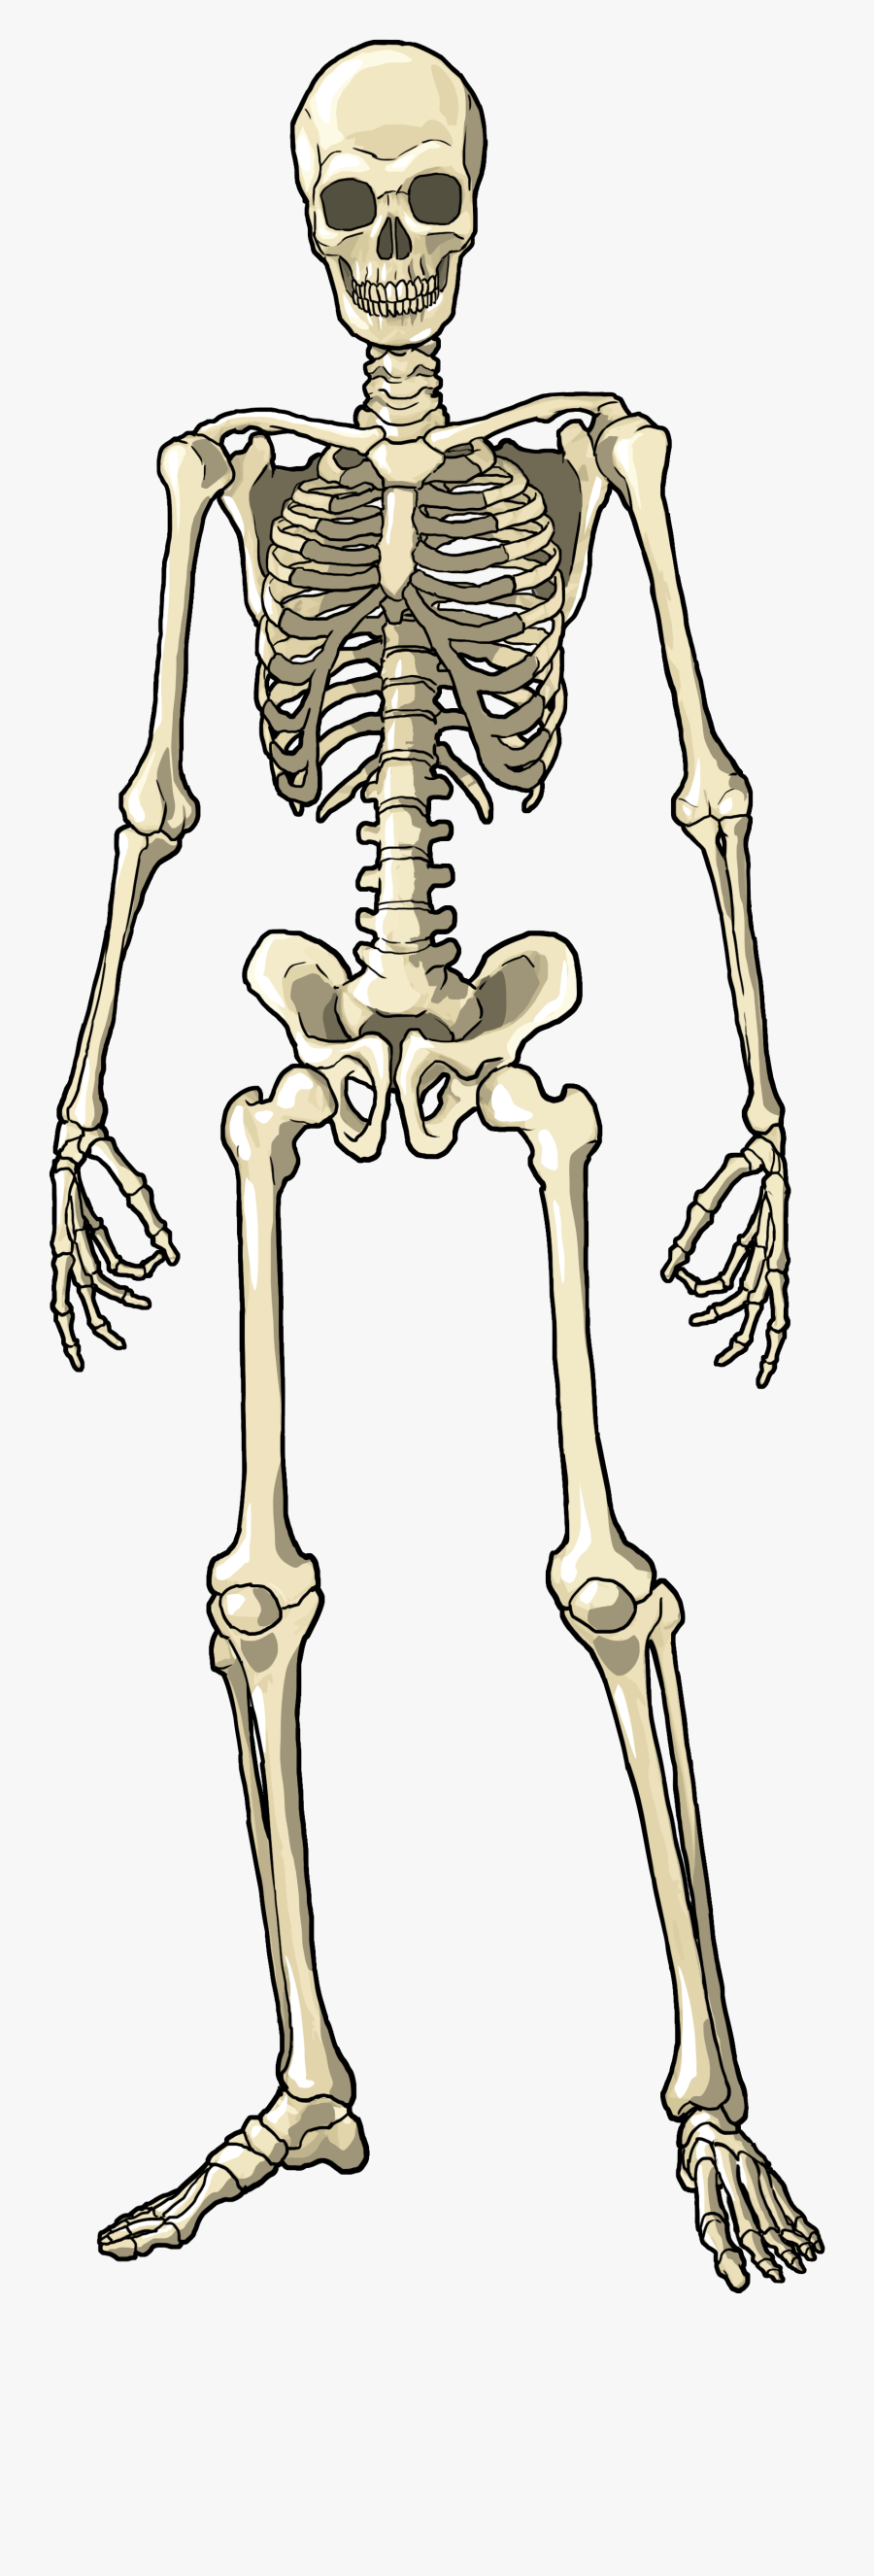 Skeleton Full Body Png, Transparent Clipart